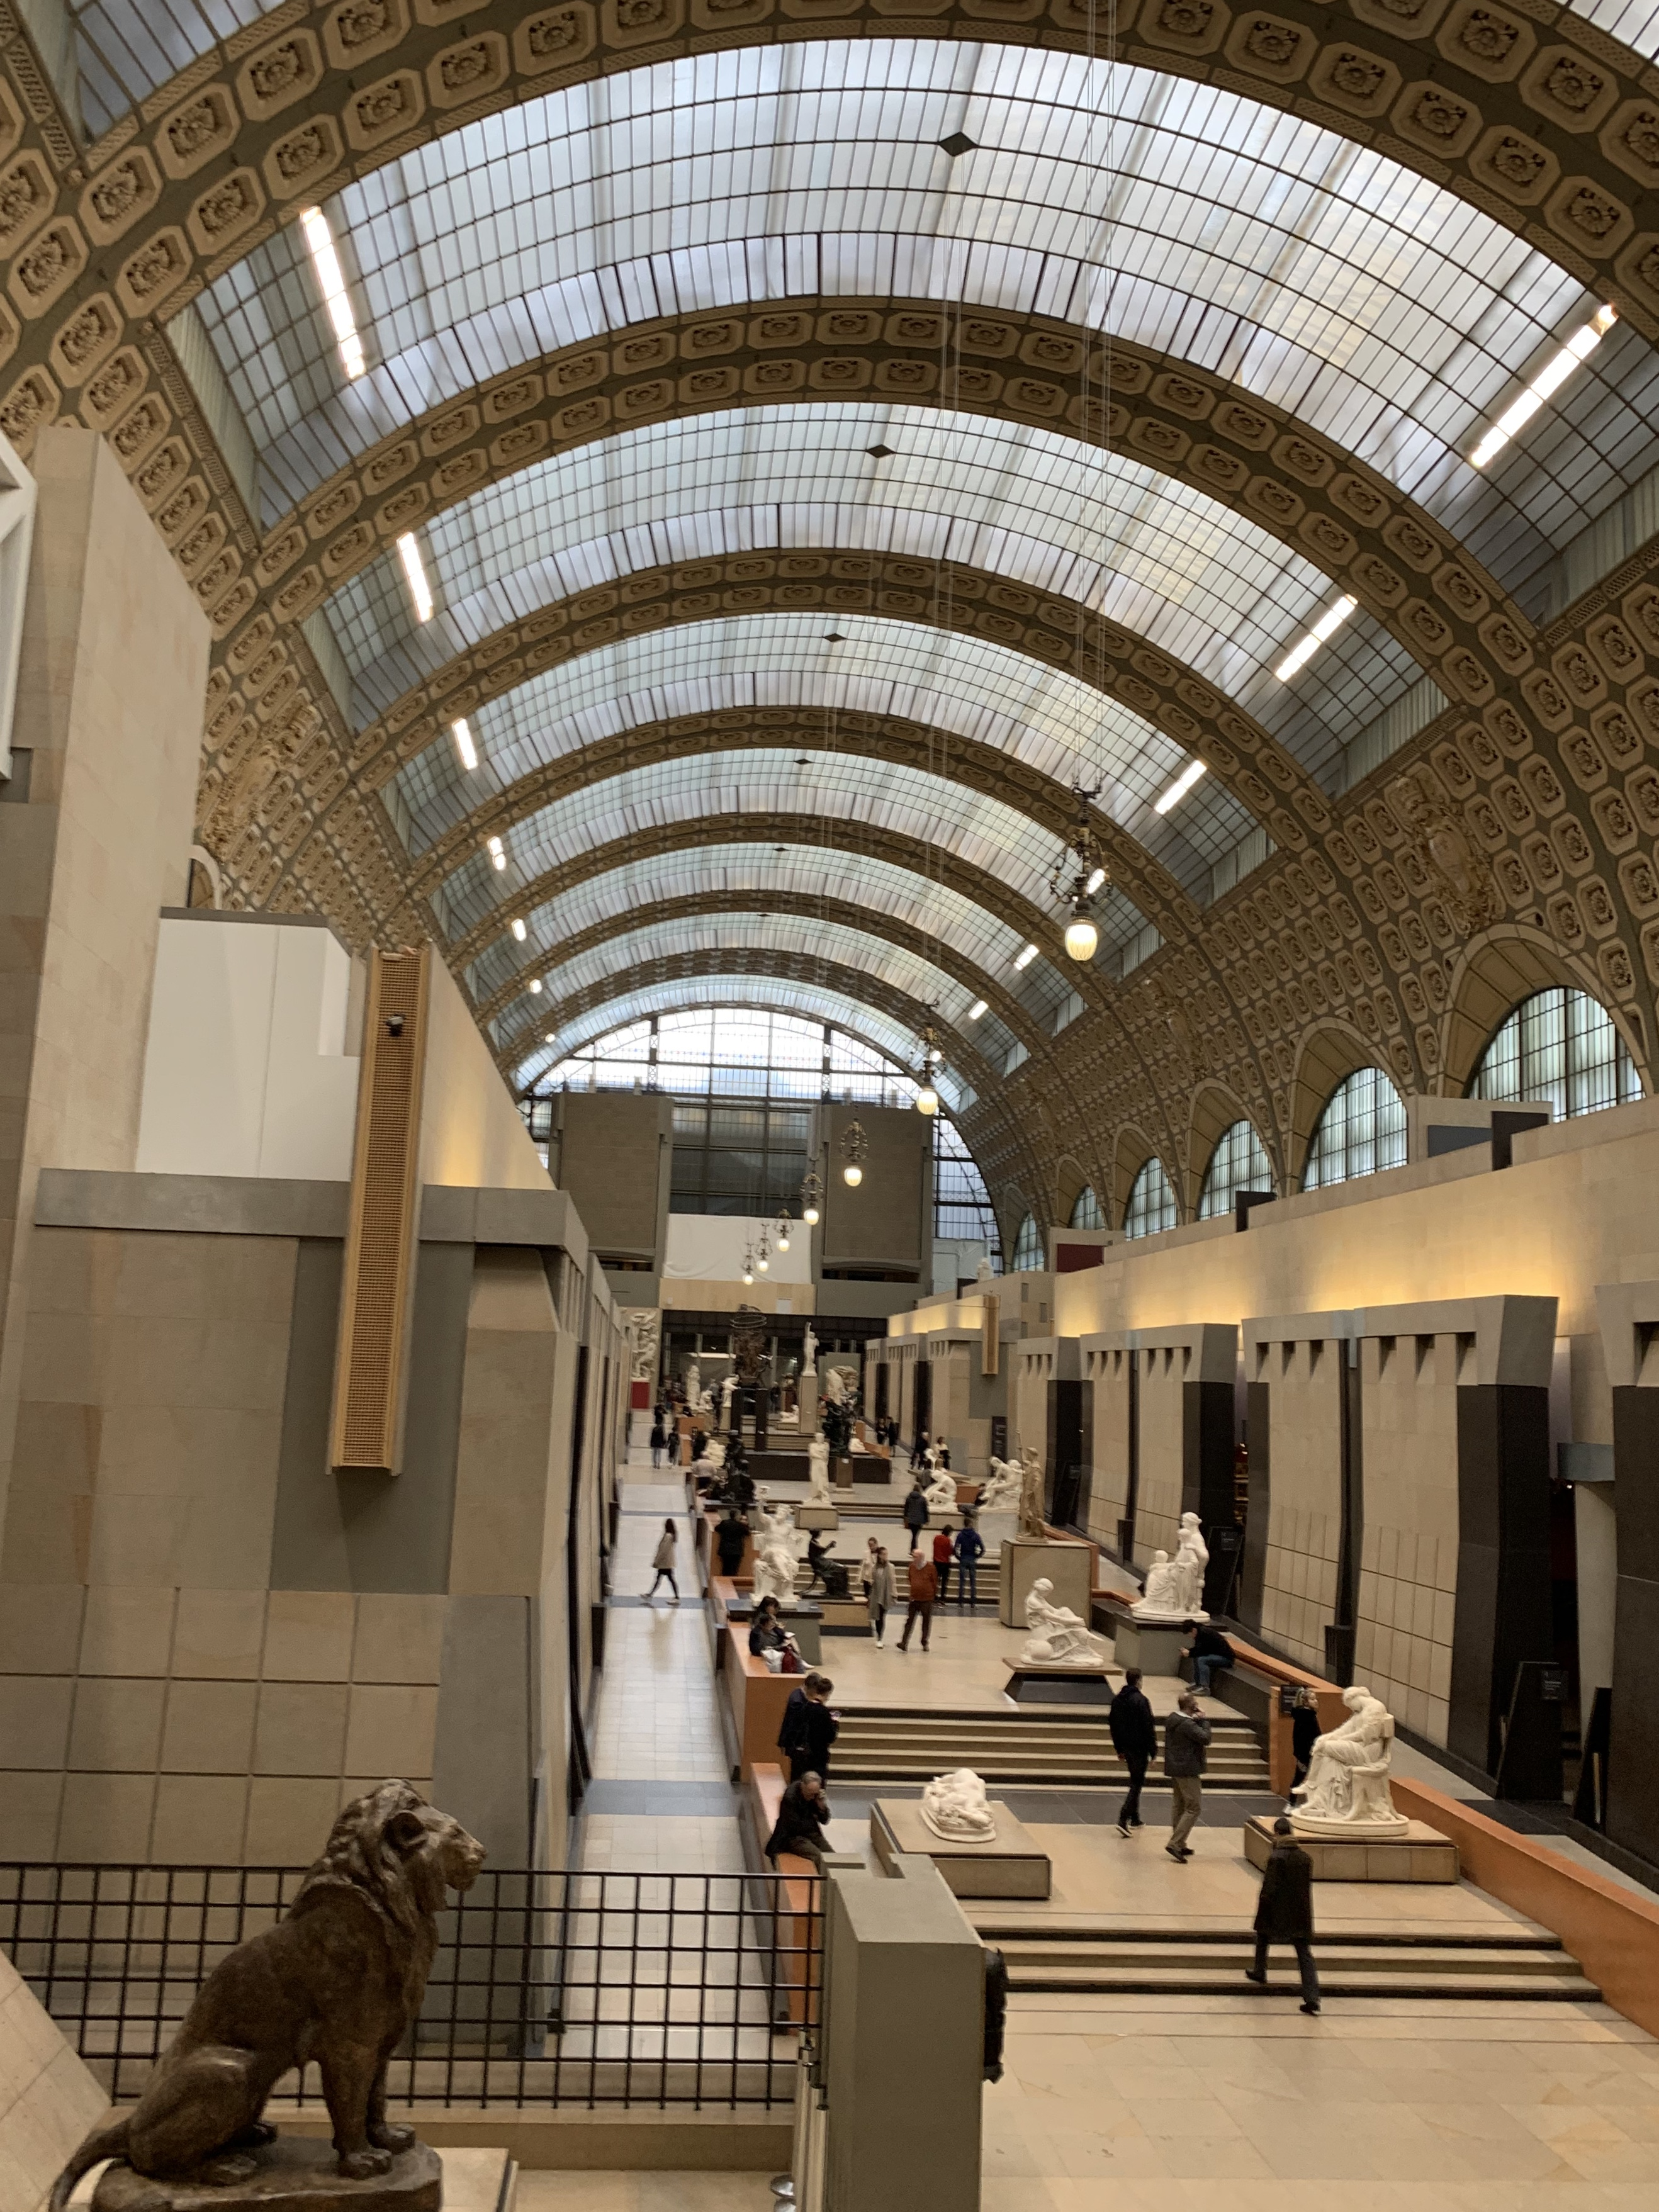 The Musee d'Orsay has a grandeur of its own which enhances the art